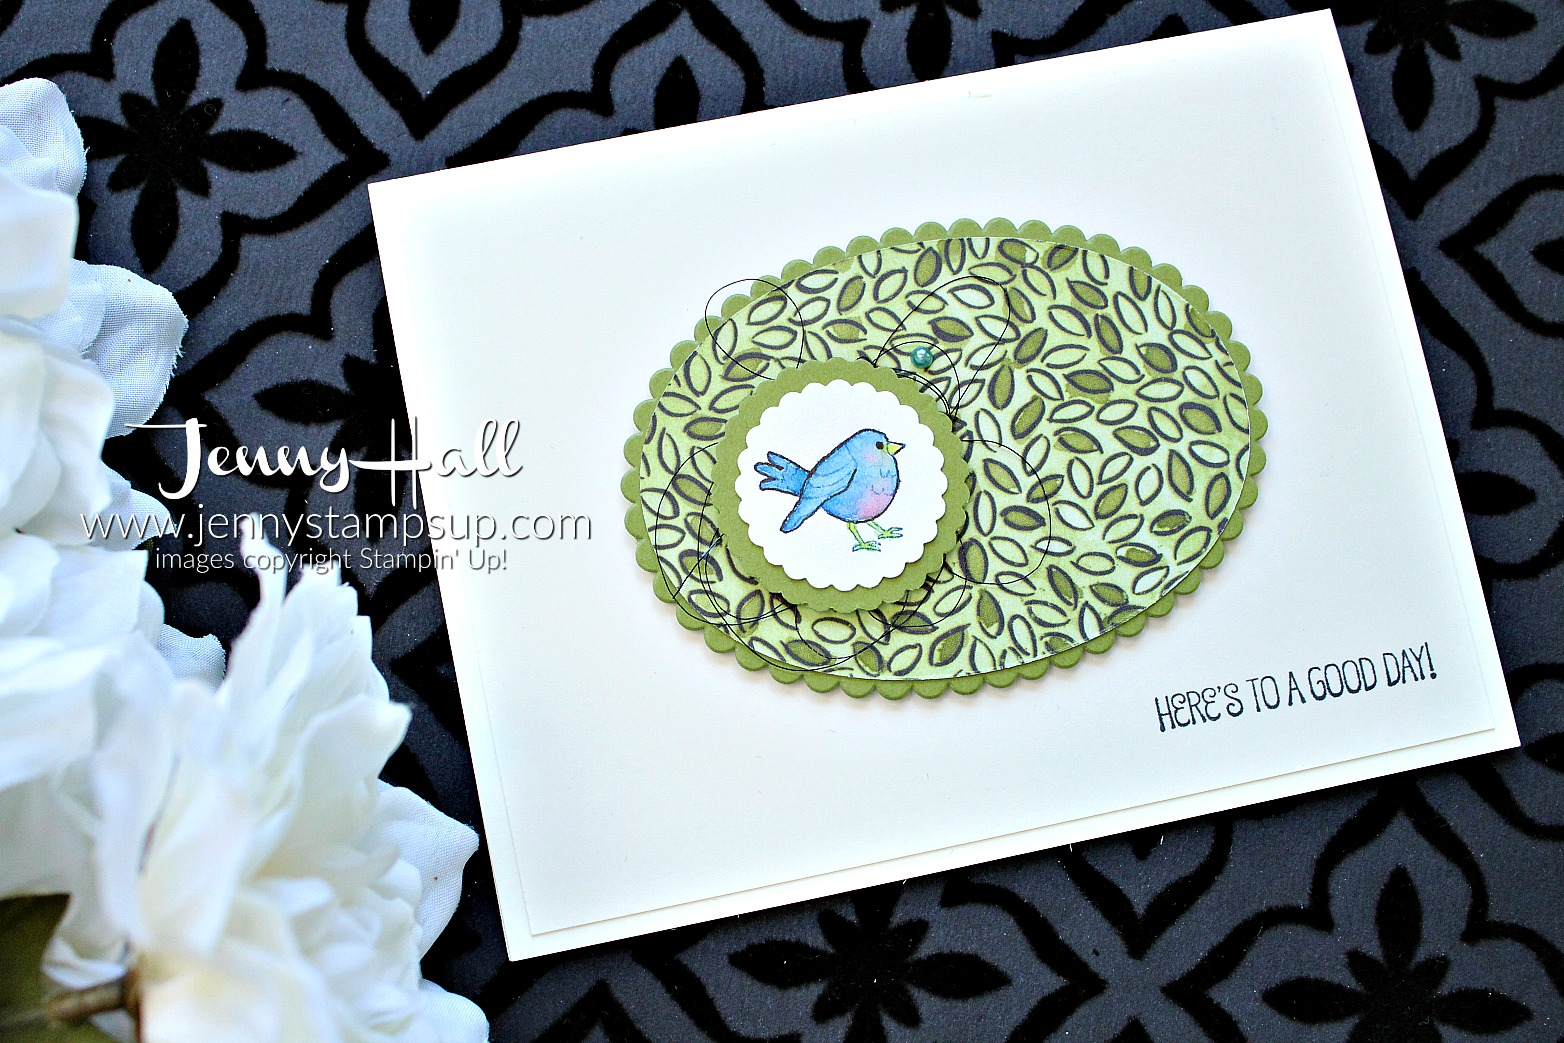 April Go For Greece blog hop card created by Jenny Hall at www.jennystampsup.com for #cardmaking #stamping #stampinup #agoodday #sharewhatyoulove #bluebird #bluebirdofhappiness #jennyhall #jennyhalldesign #jennystampsup #bloghop #goforgreece #gfgbh #papercrafting #crafts #nature